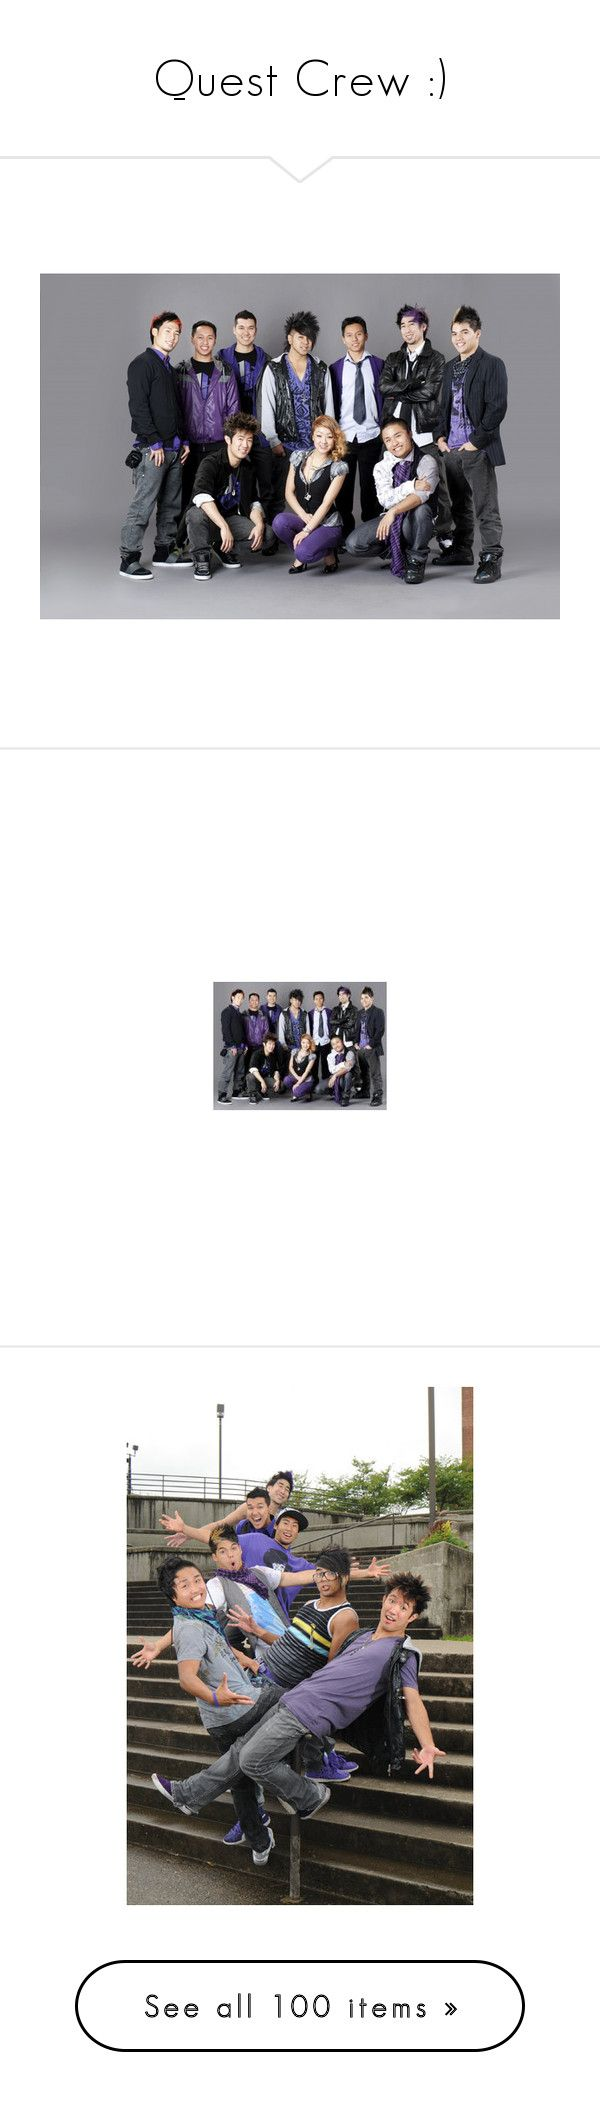 """""""Quest Crew :)"""" by vlrb02 ❤ liked on Polyvore featuring quest crew, dance, tops, crew-neck tops, crew neck shirt, lakers shirt, crewneck shirts, crew top, quotes and saying"""